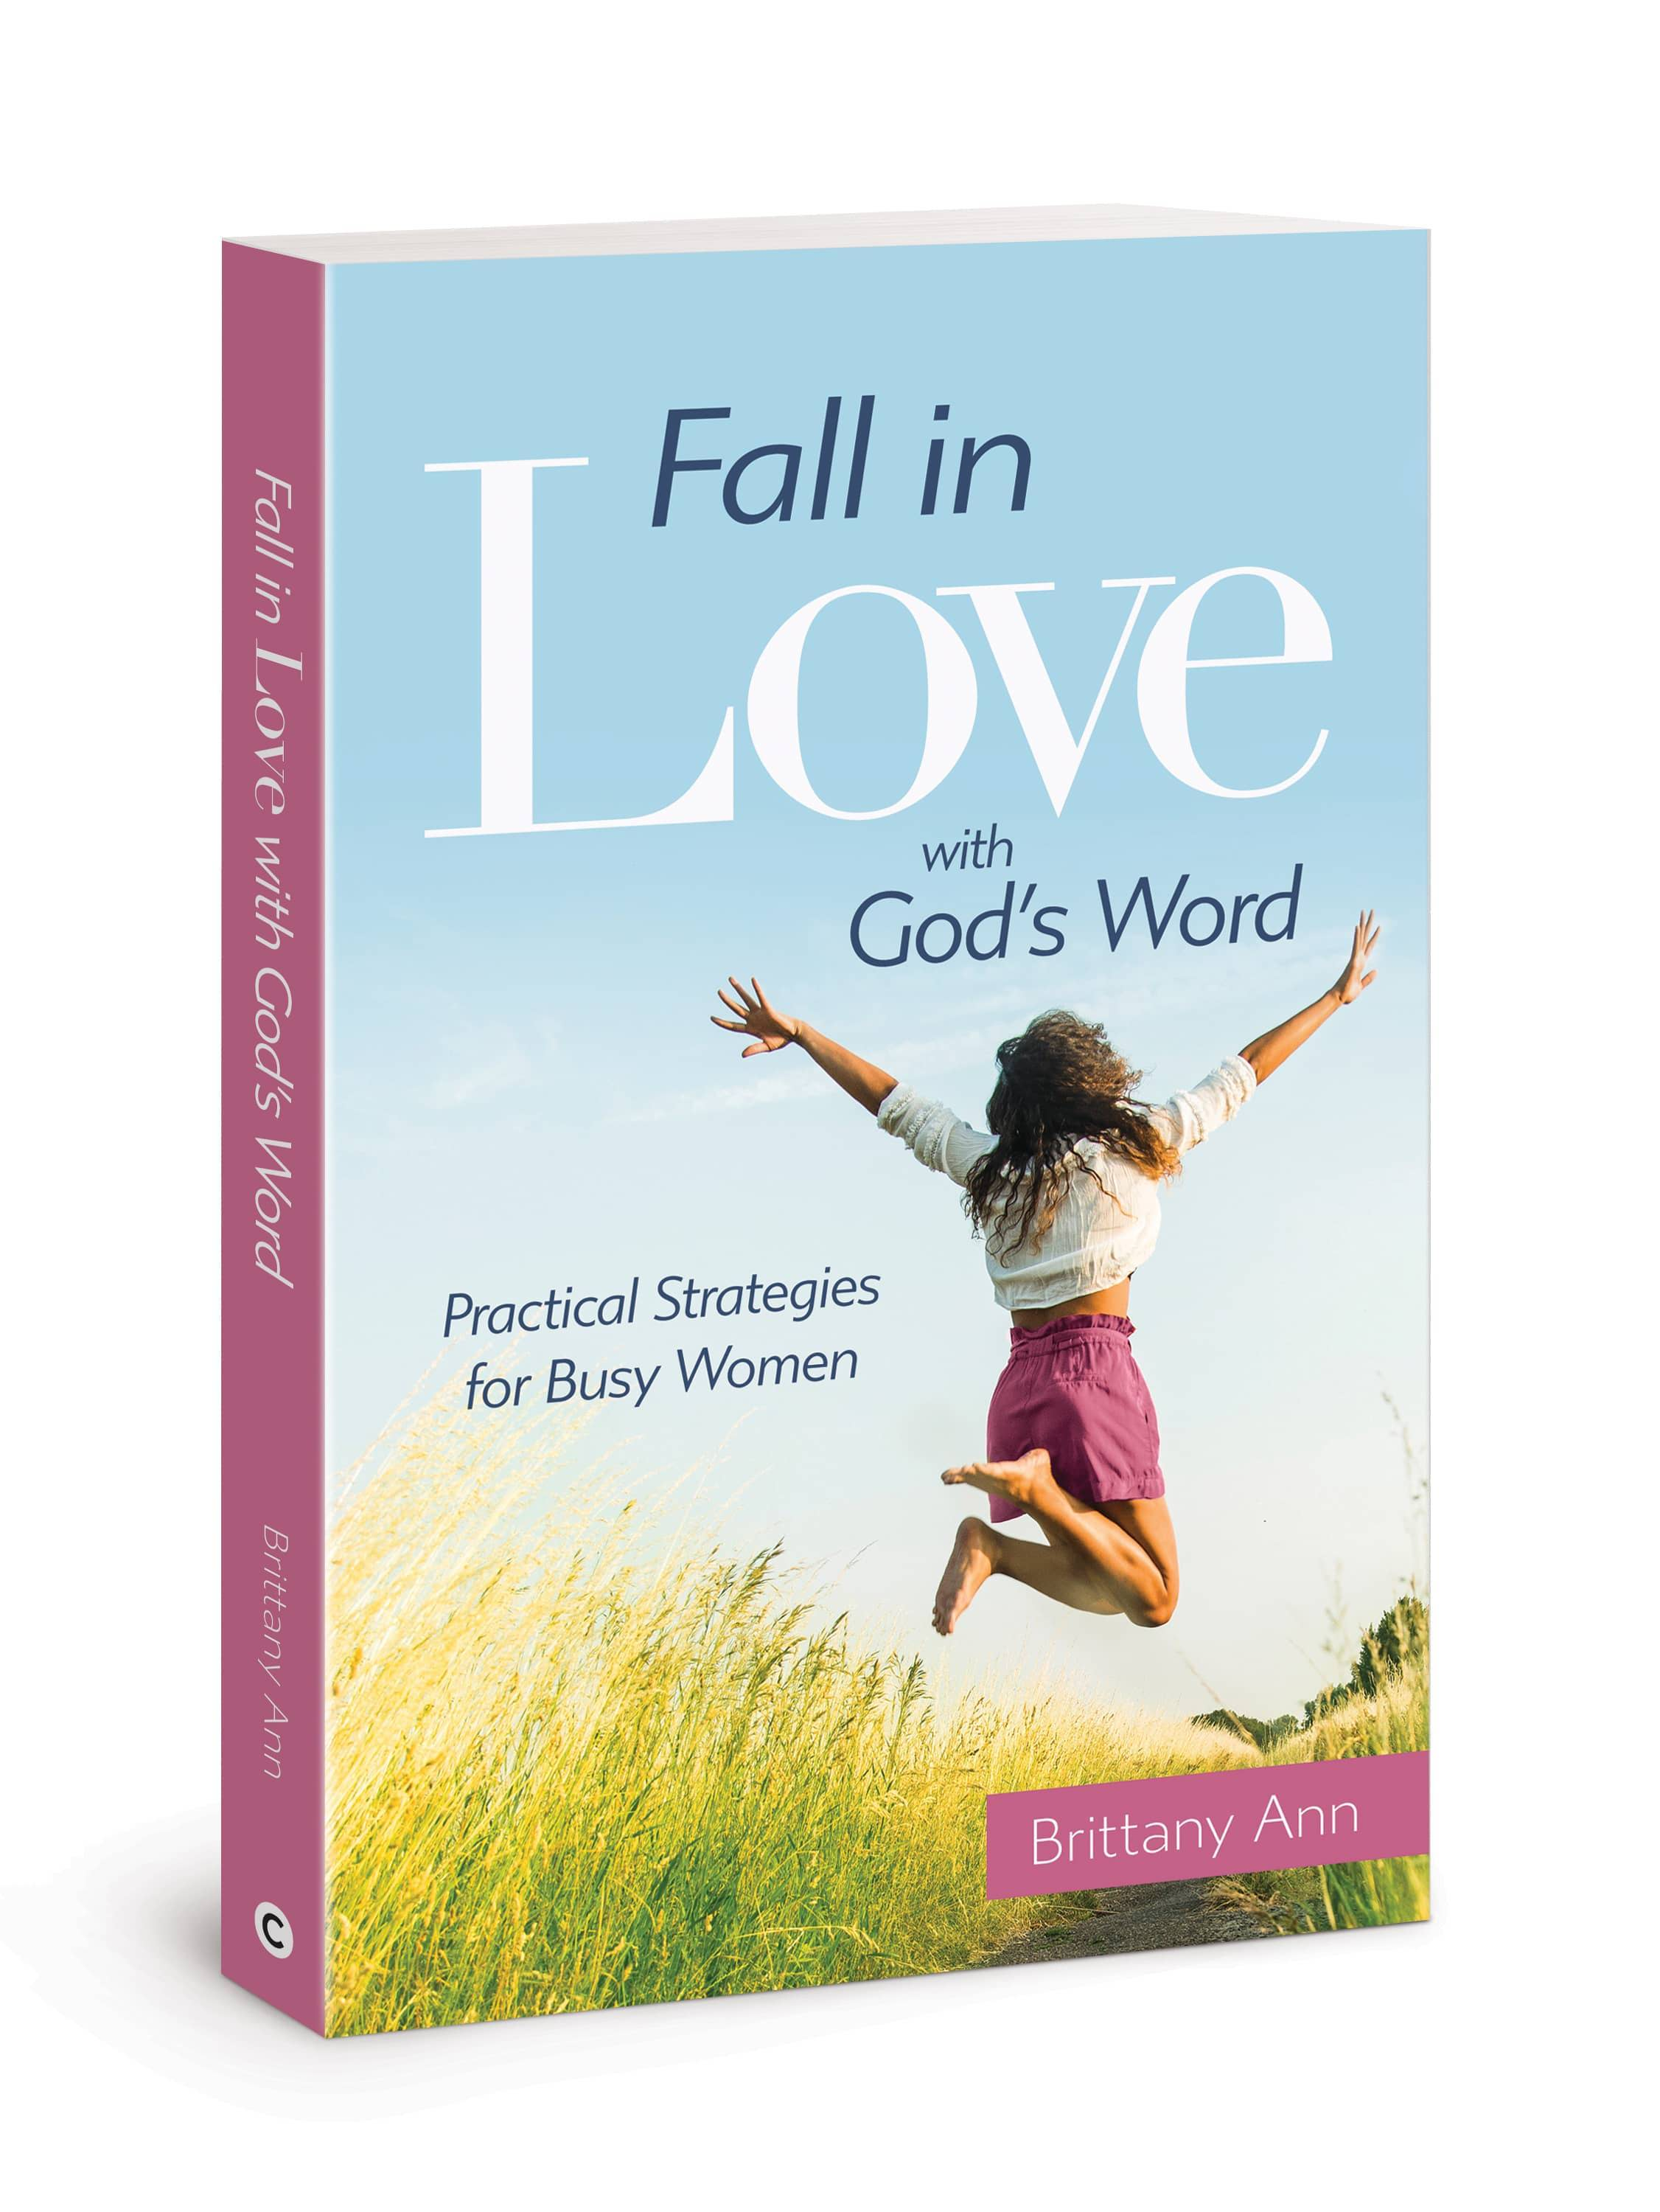 New Christian book for busy women to read God's word